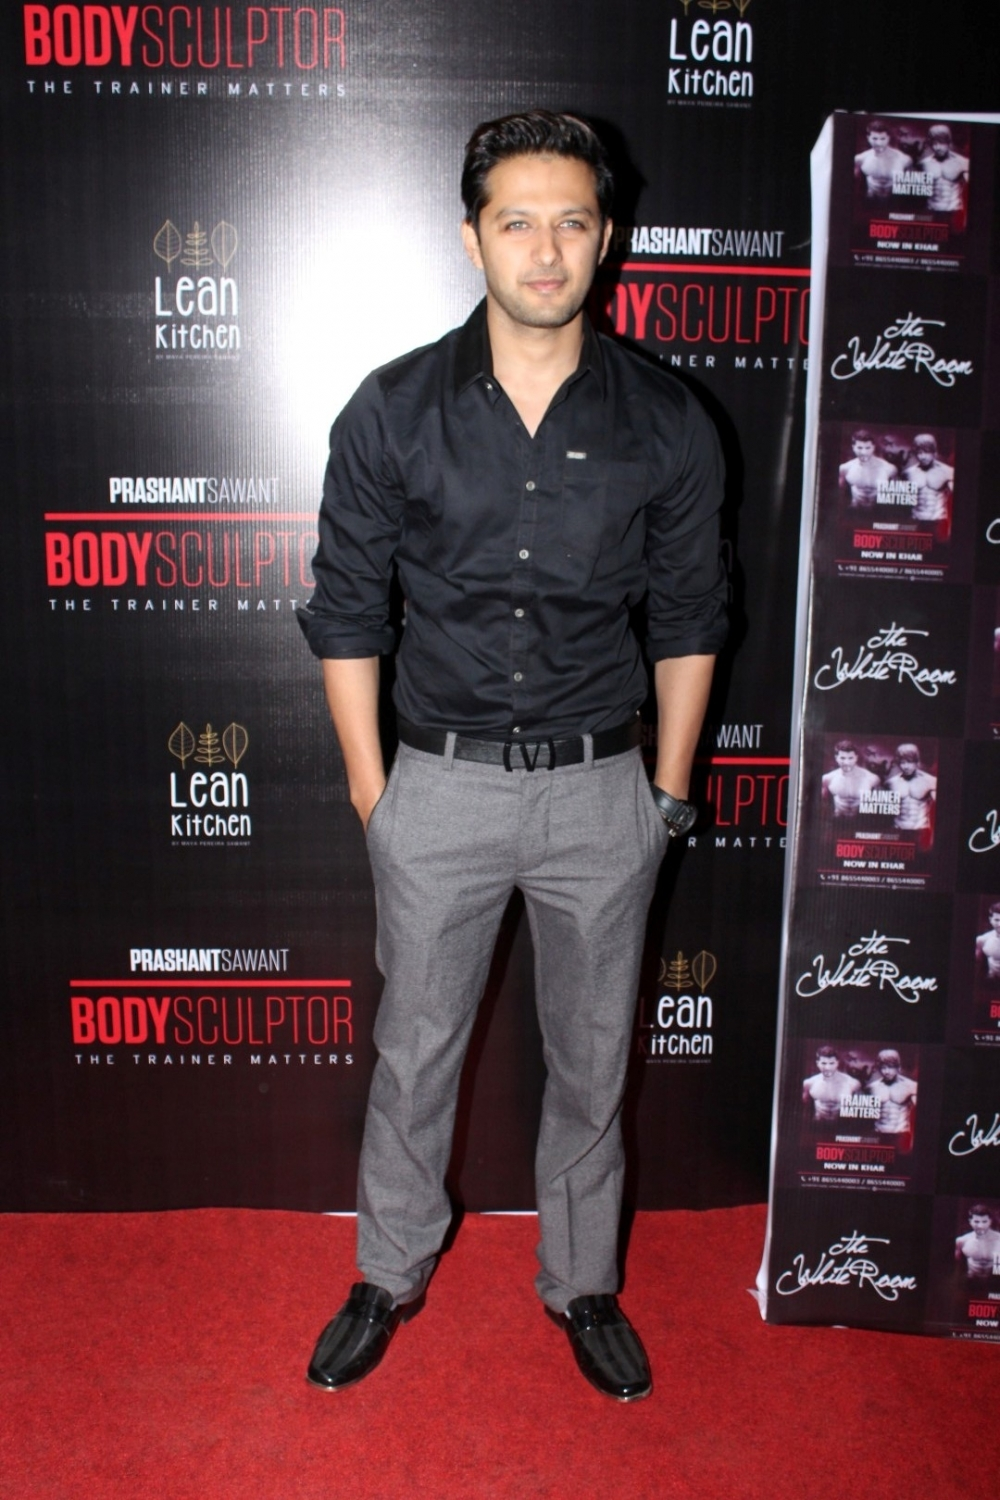 Mumbai: Actor Vatsal Sheth during the launch party of Body Sculptor Gym in Mumbai on Jan 28, 2017. (Photo: IANS)